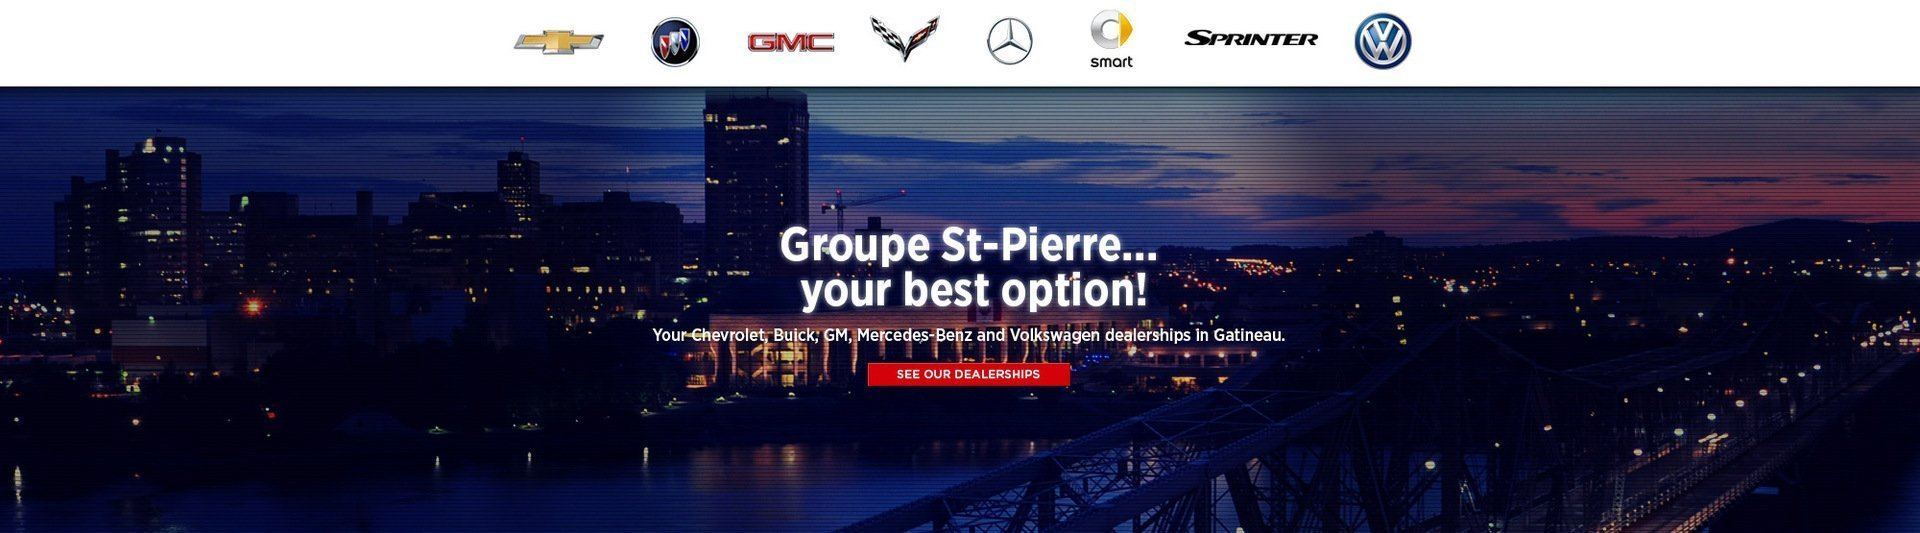 Groupe St-Pierre-banner2